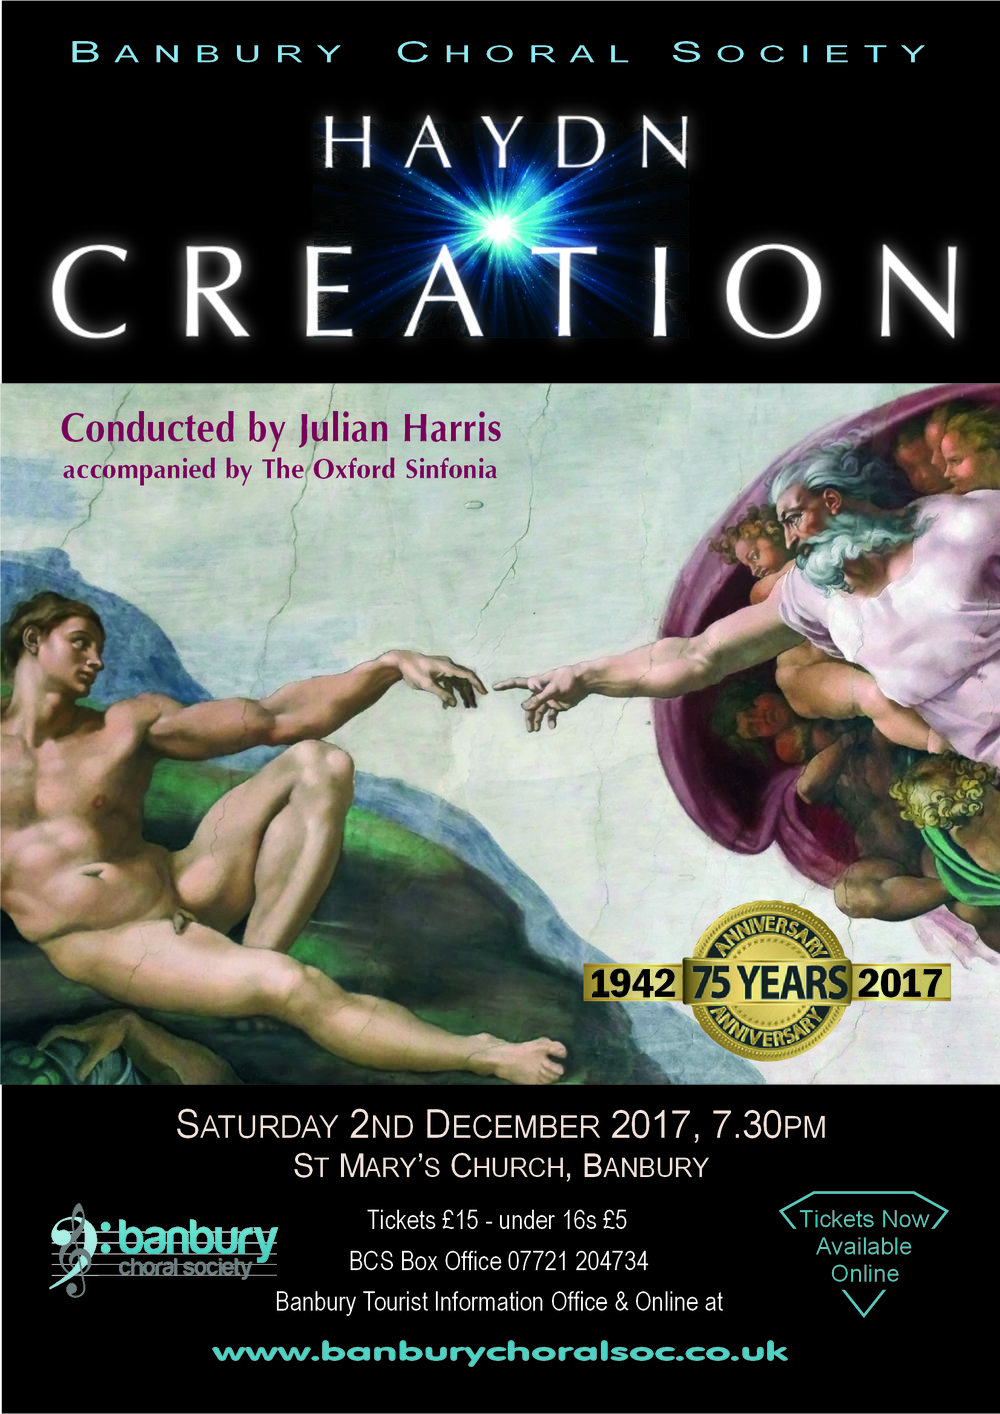 Our next concert, taking place at St Mary's Church, Banbury